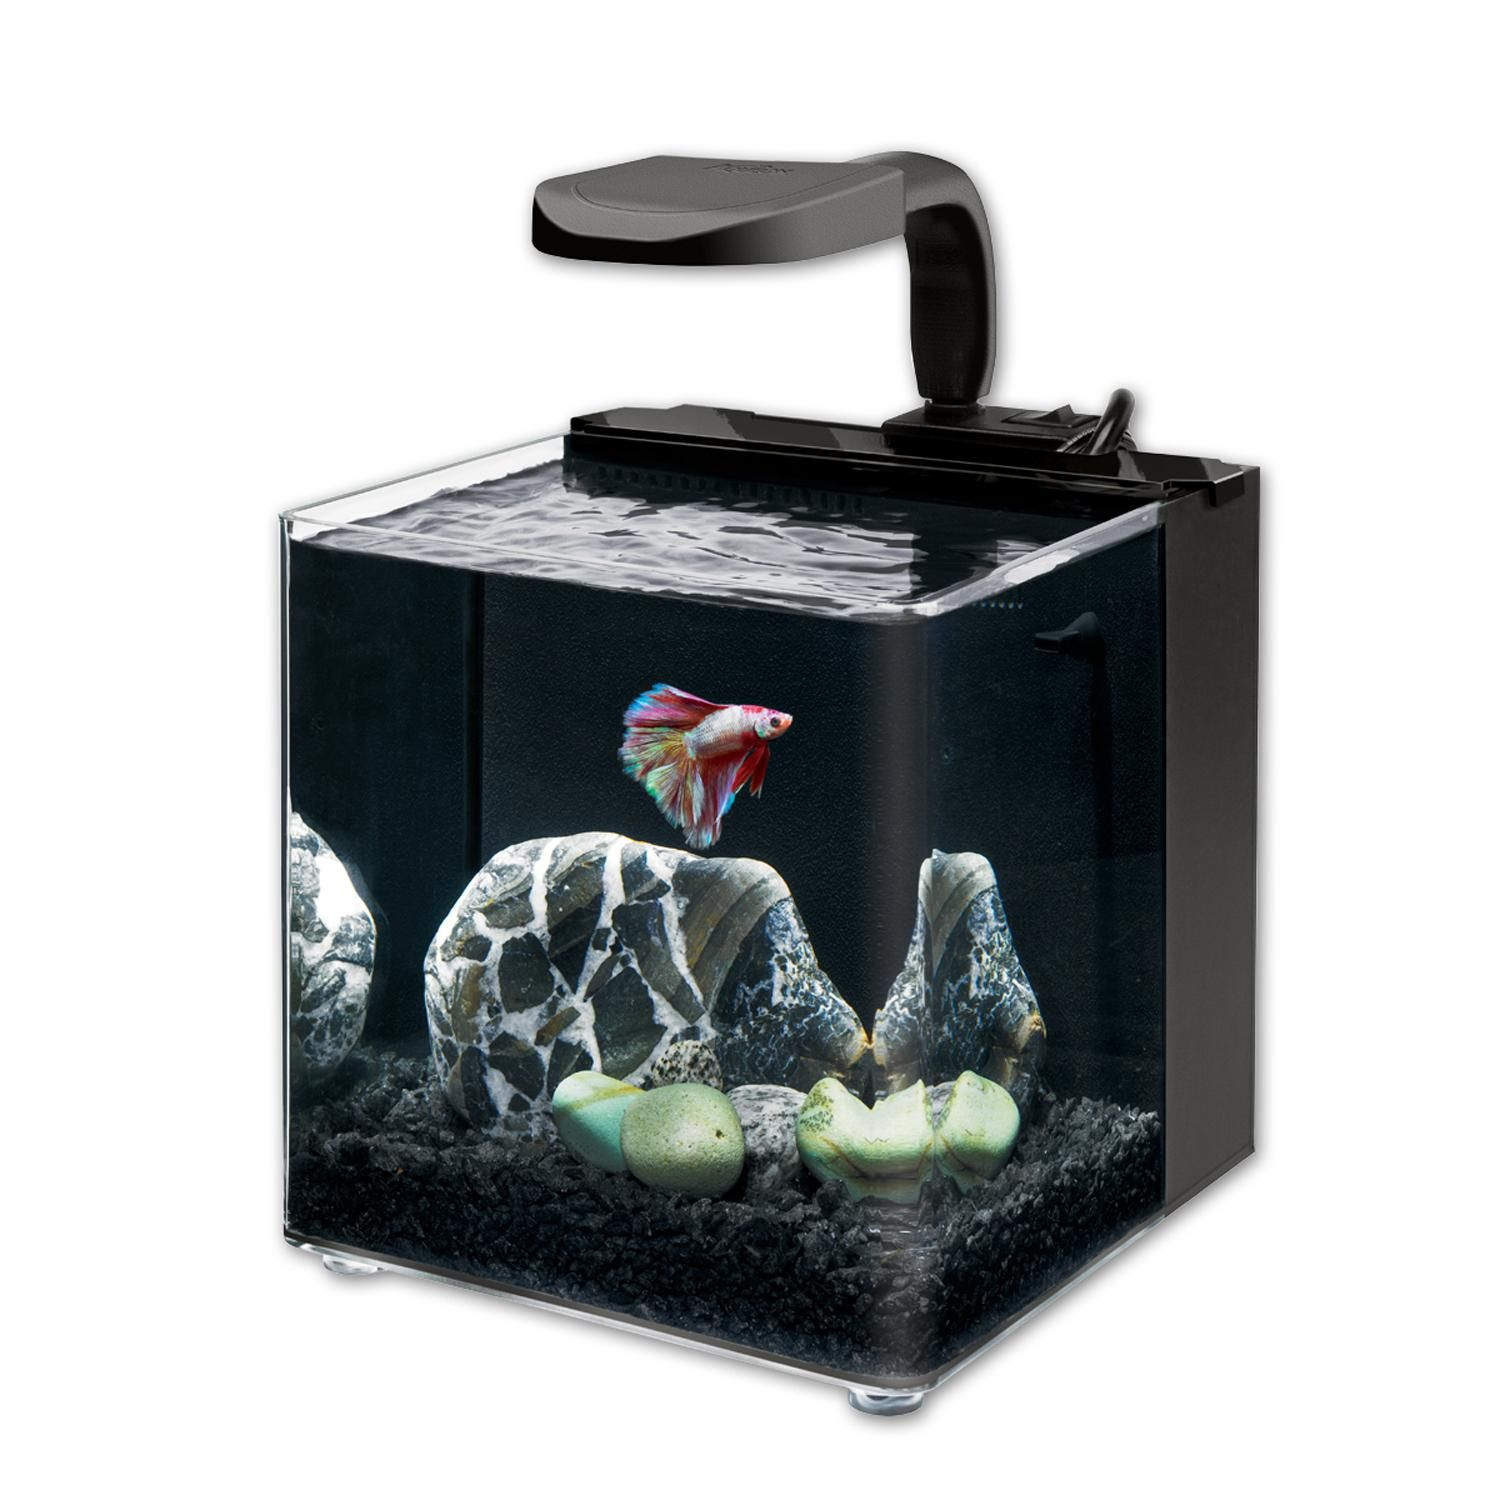 Aqueon evolve led aquarium kit comes in a variety of for Aqueon fish tank